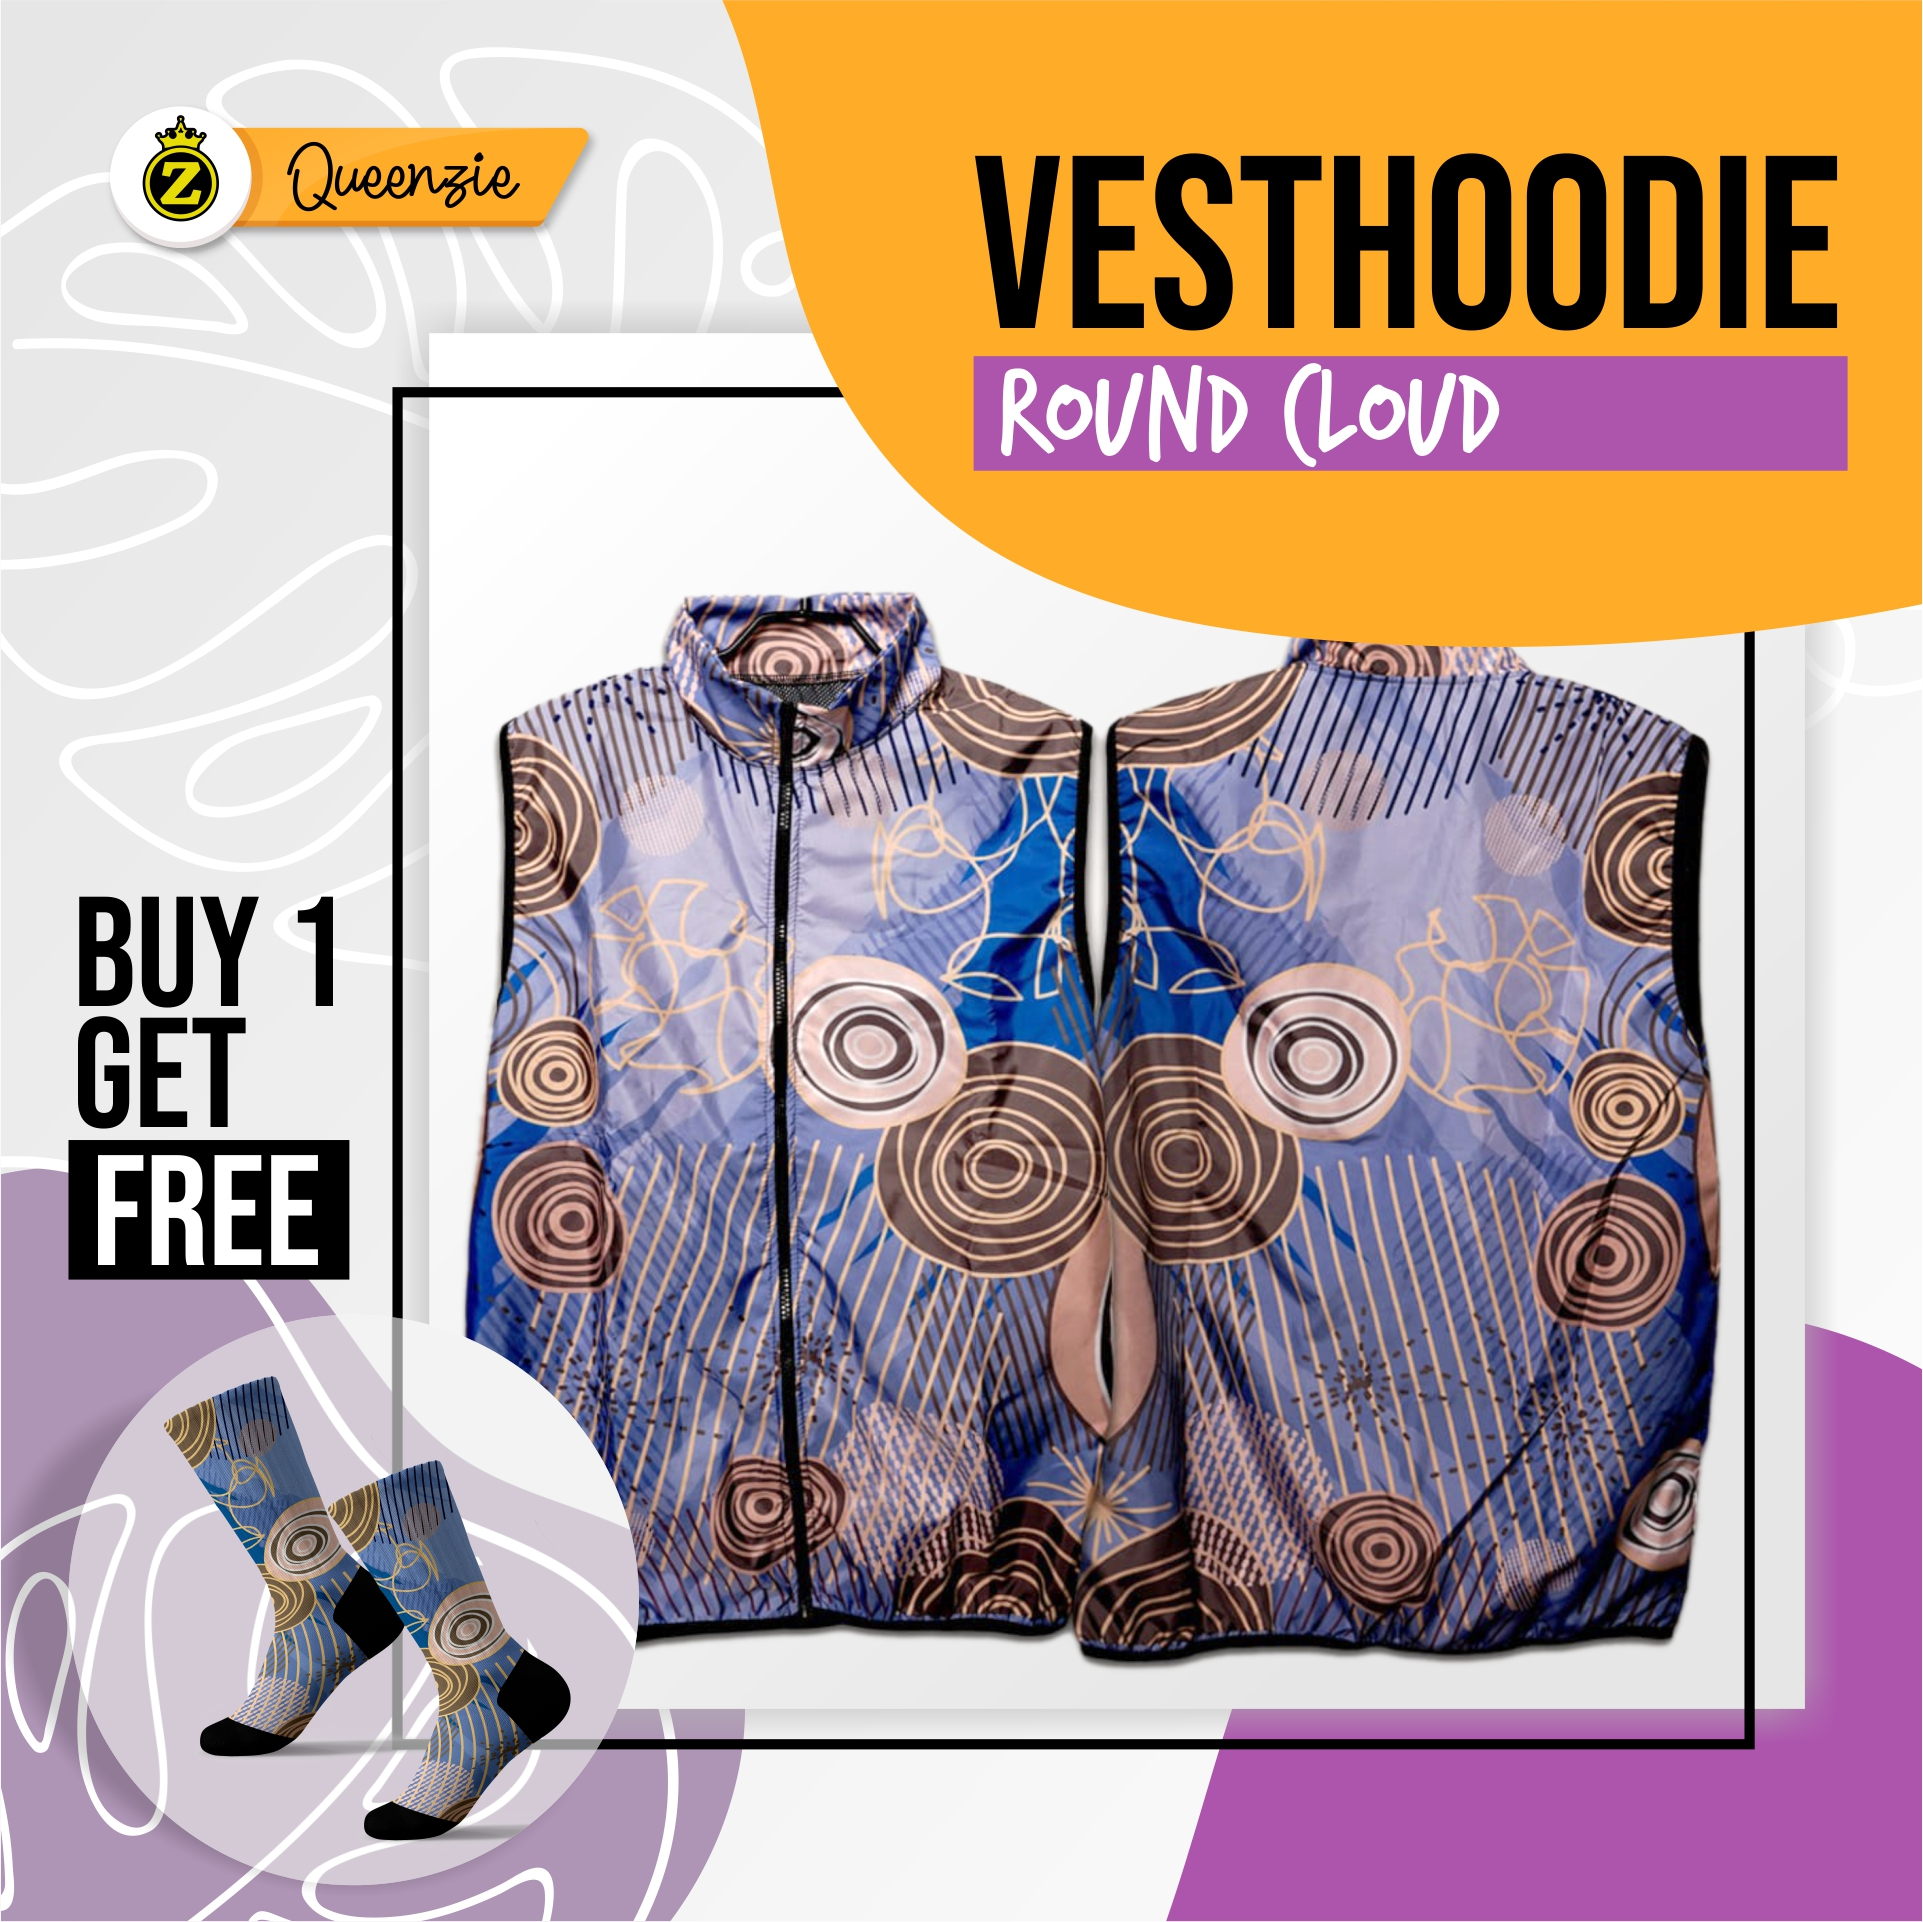 Vesthoodie Round Could Rompi